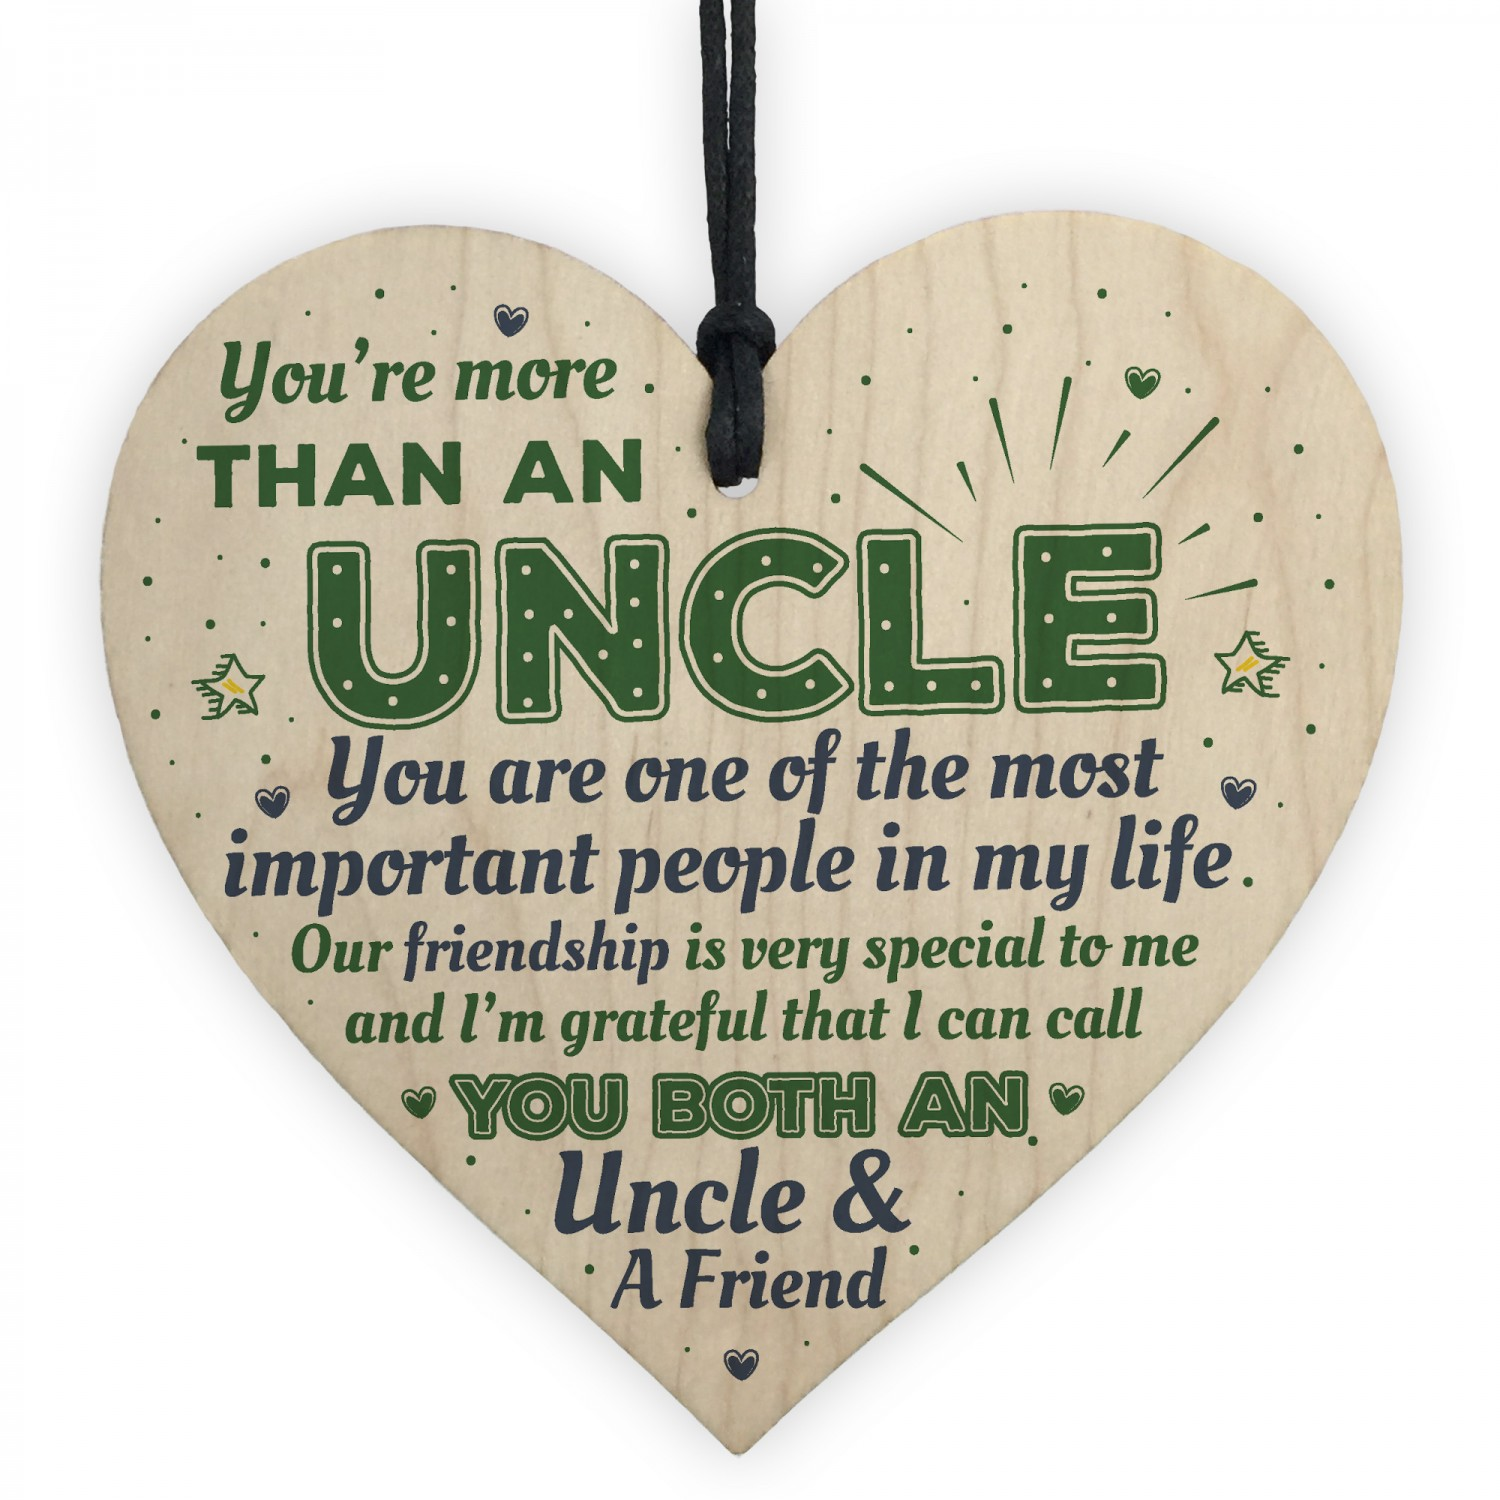 Uncle Friendship Gift Handmade Wood Heart Birthday Plaque